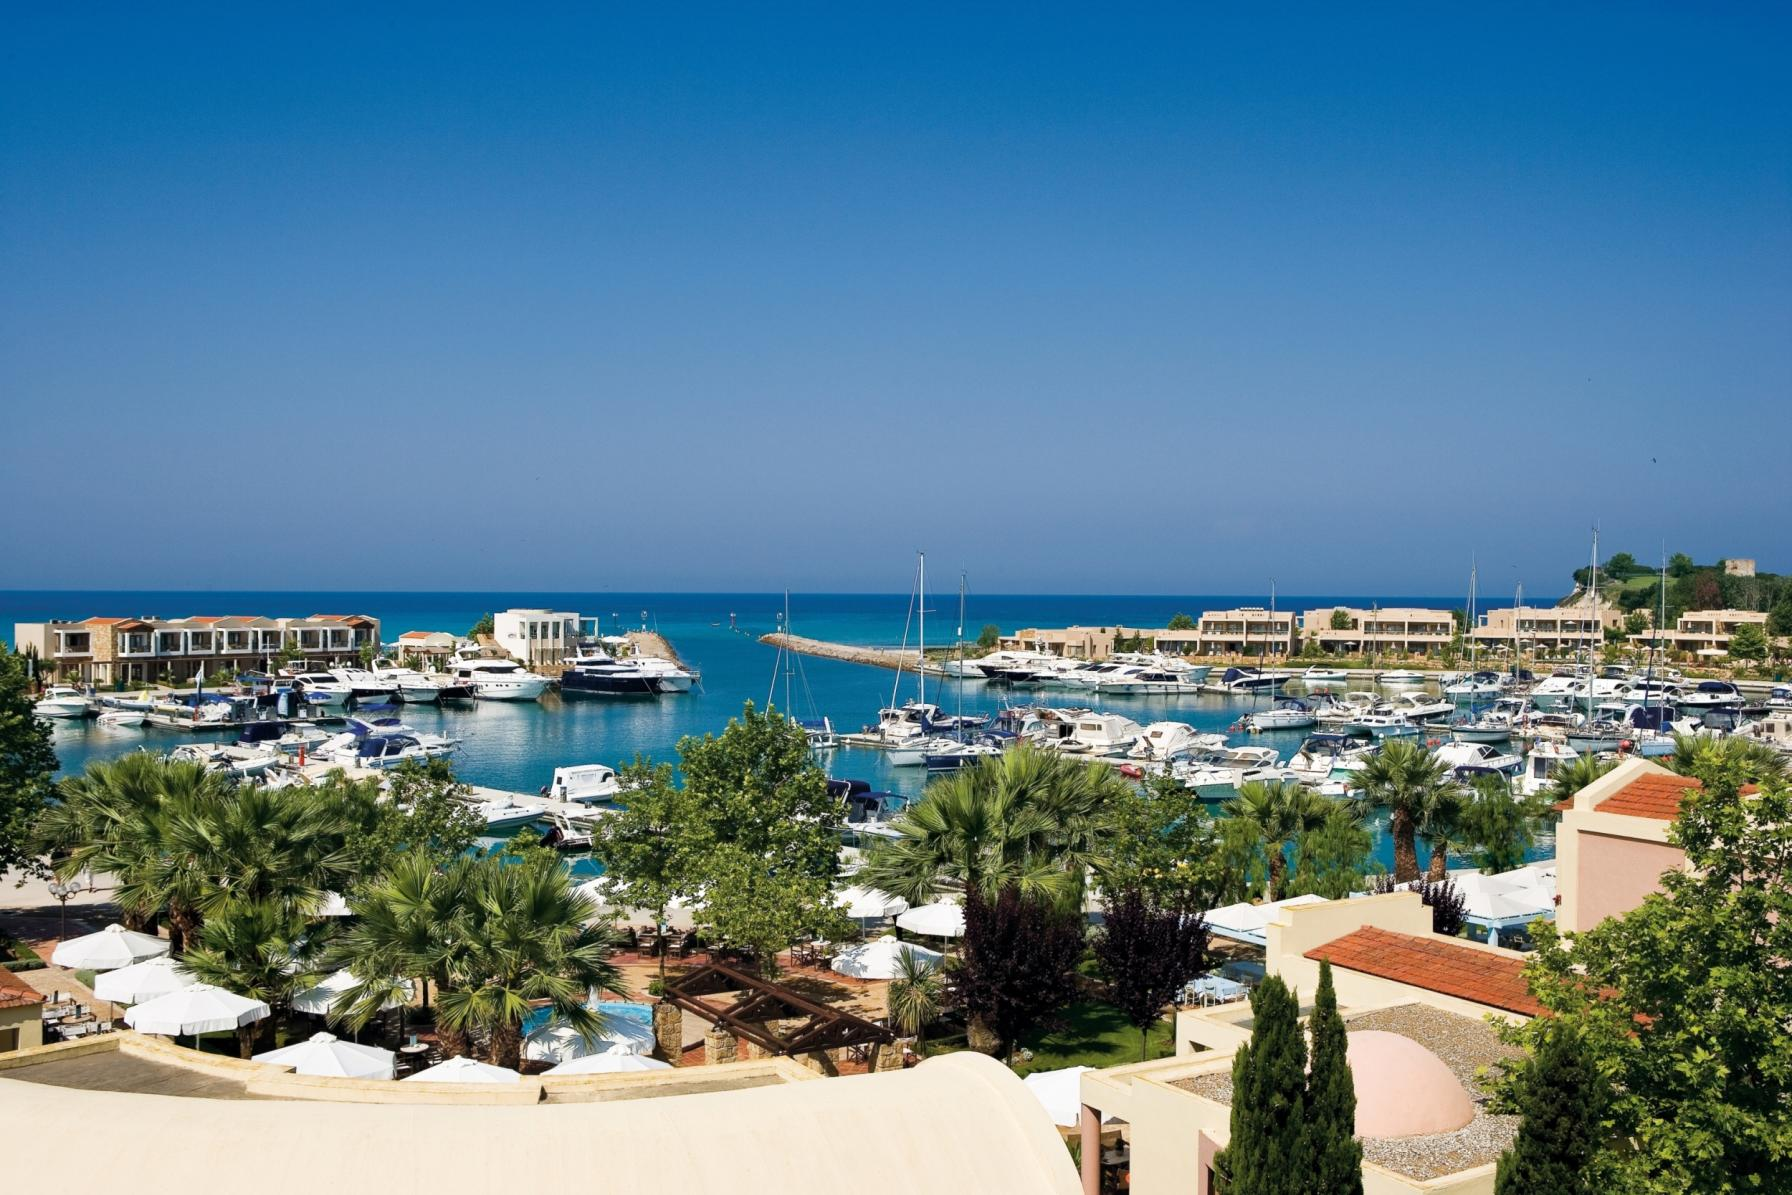 Hottest Families Resorts, Halkidiki, Greece, Sani Beach Resort marina